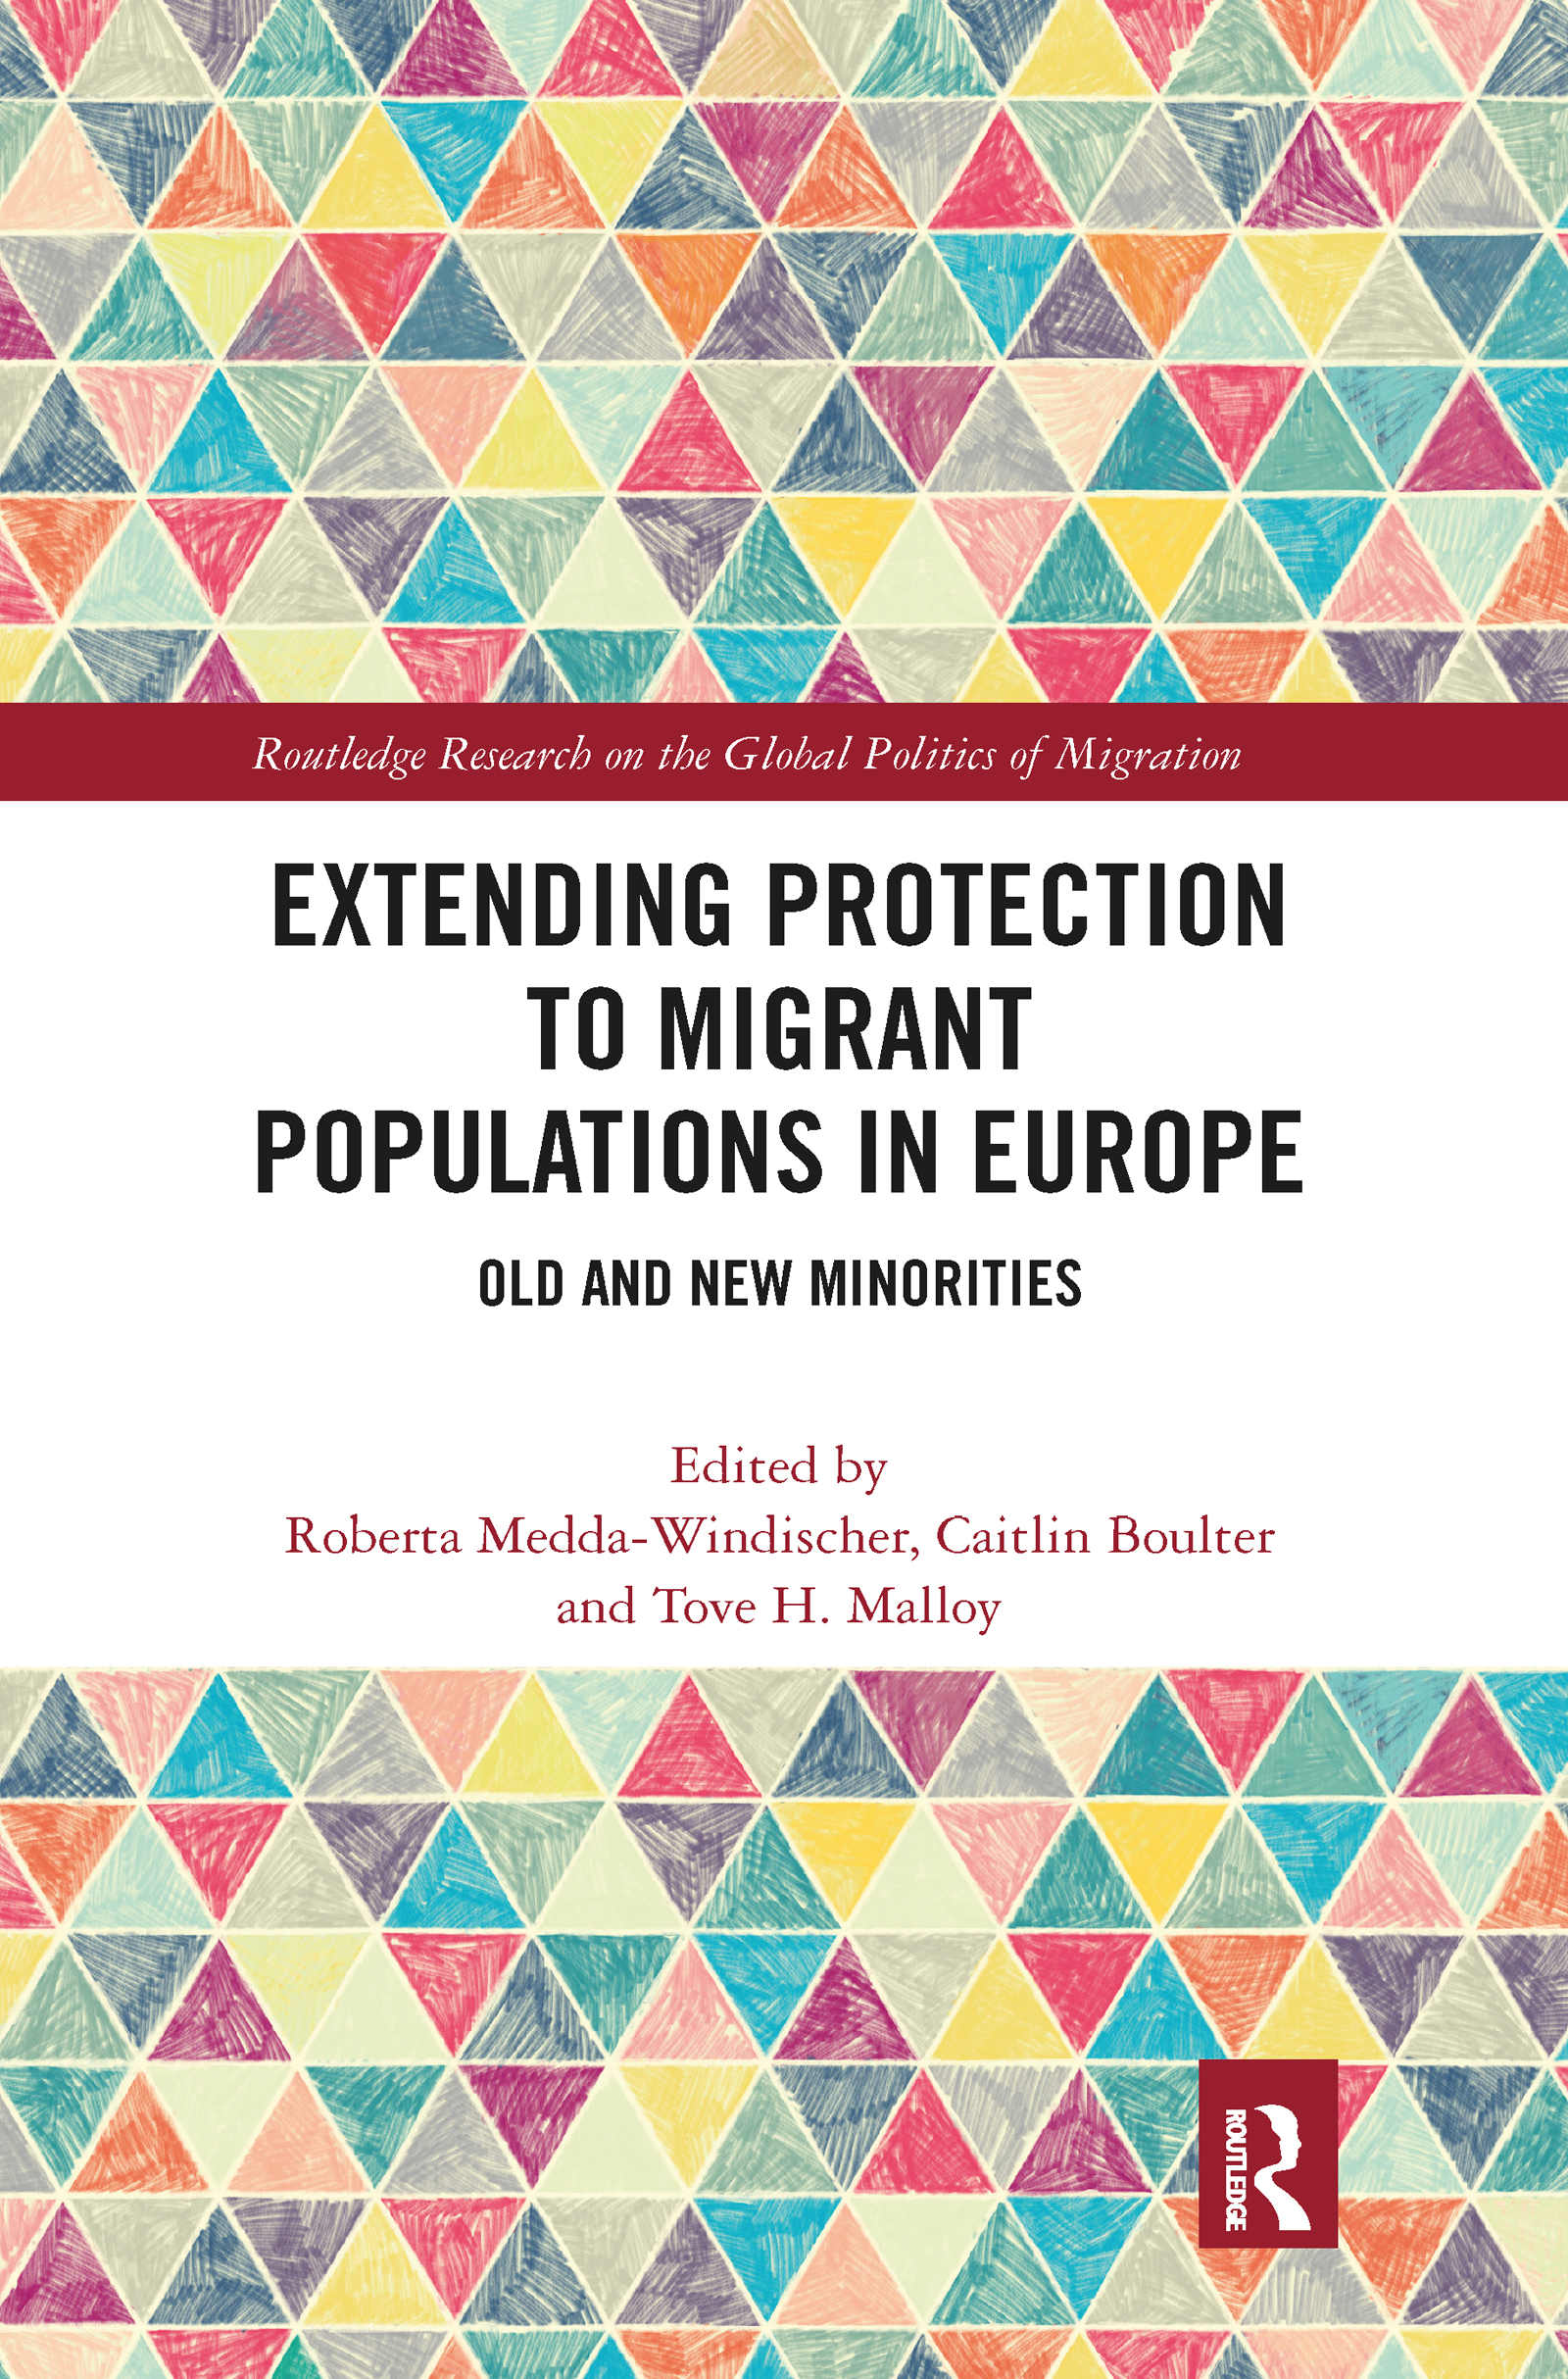 Extending Protection to Migrant Populations in Europe